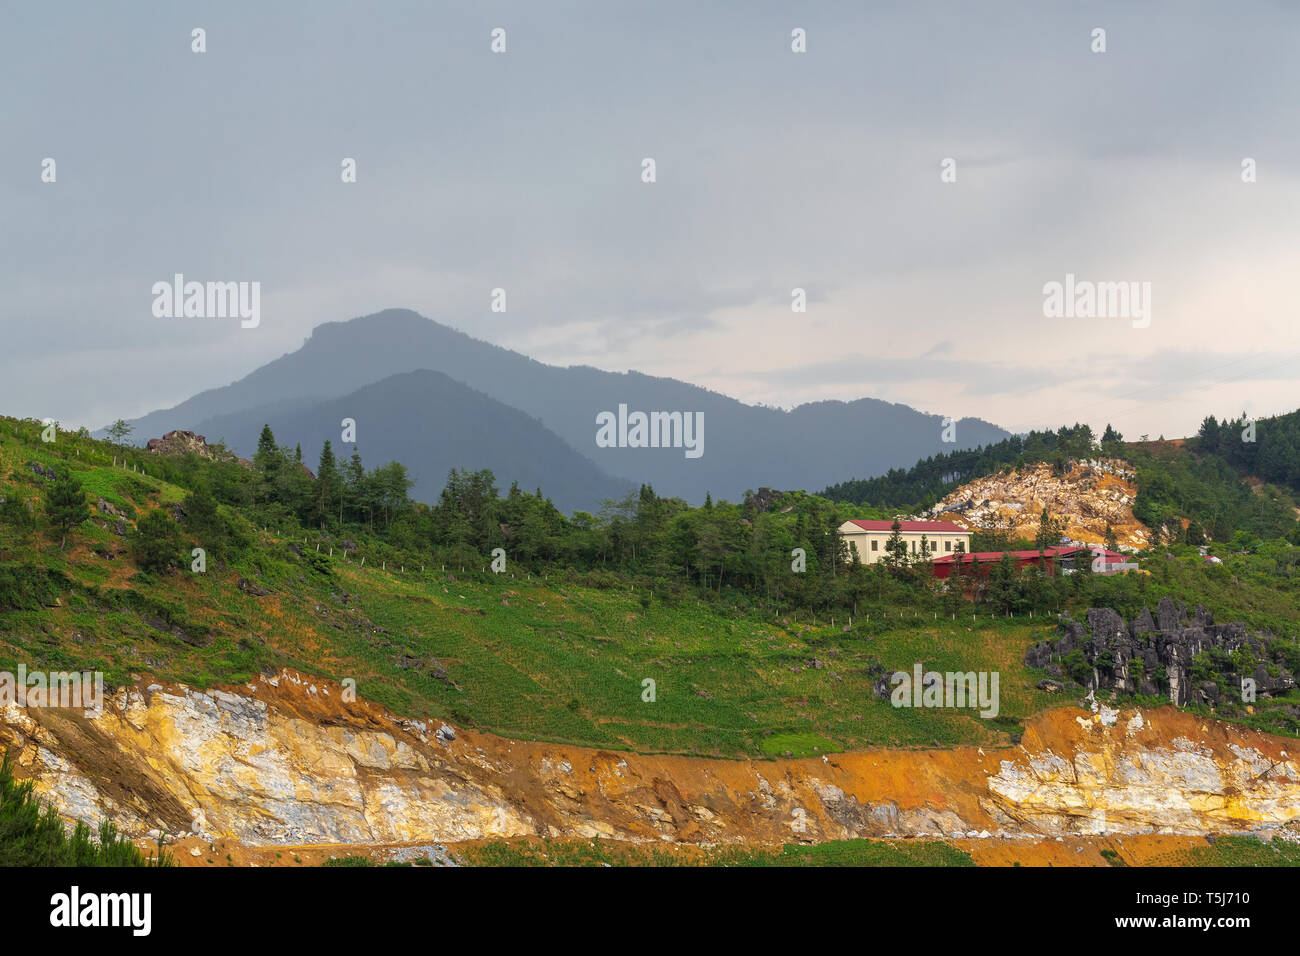 Lone building on the top of a rocky hill in SaPa, Vietnam, Asia - Stock Image